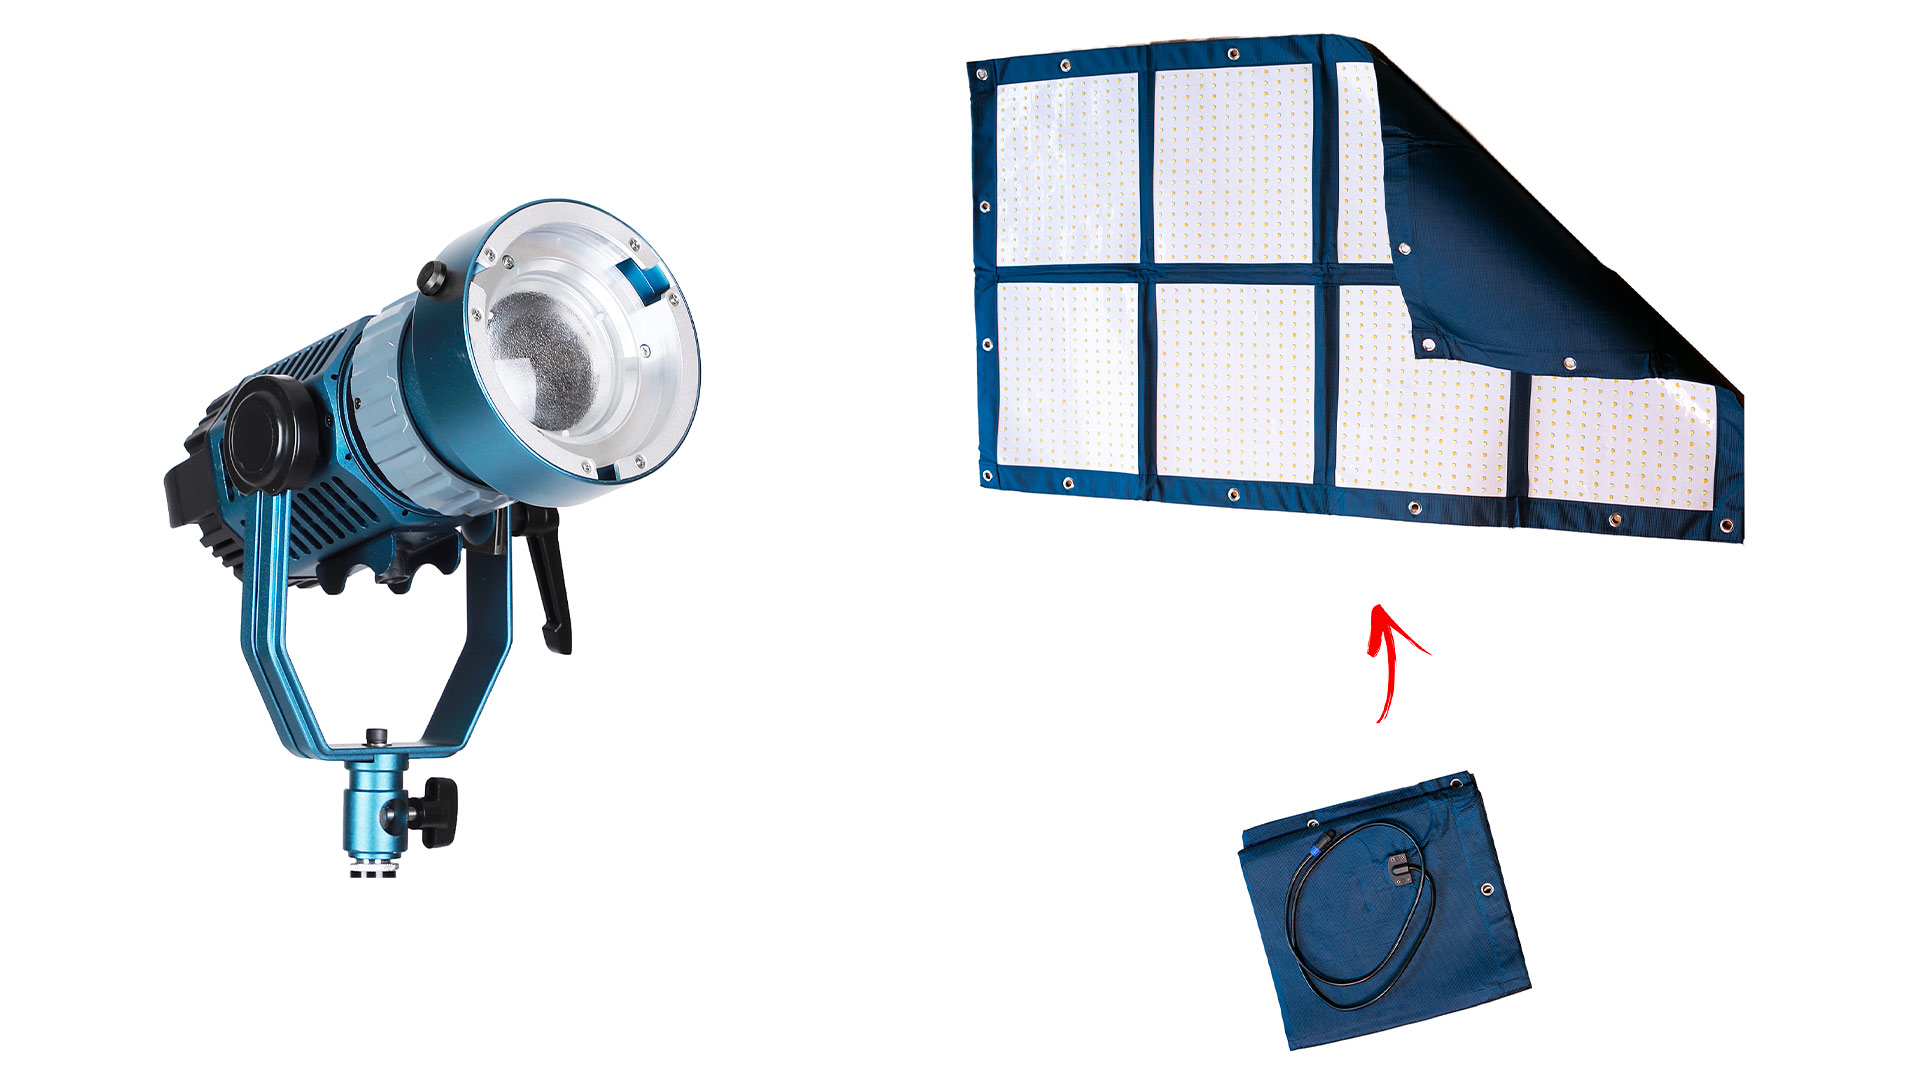 Luces LED Light Cannon X-100 y MEGA-LiteCloth de Intellytech